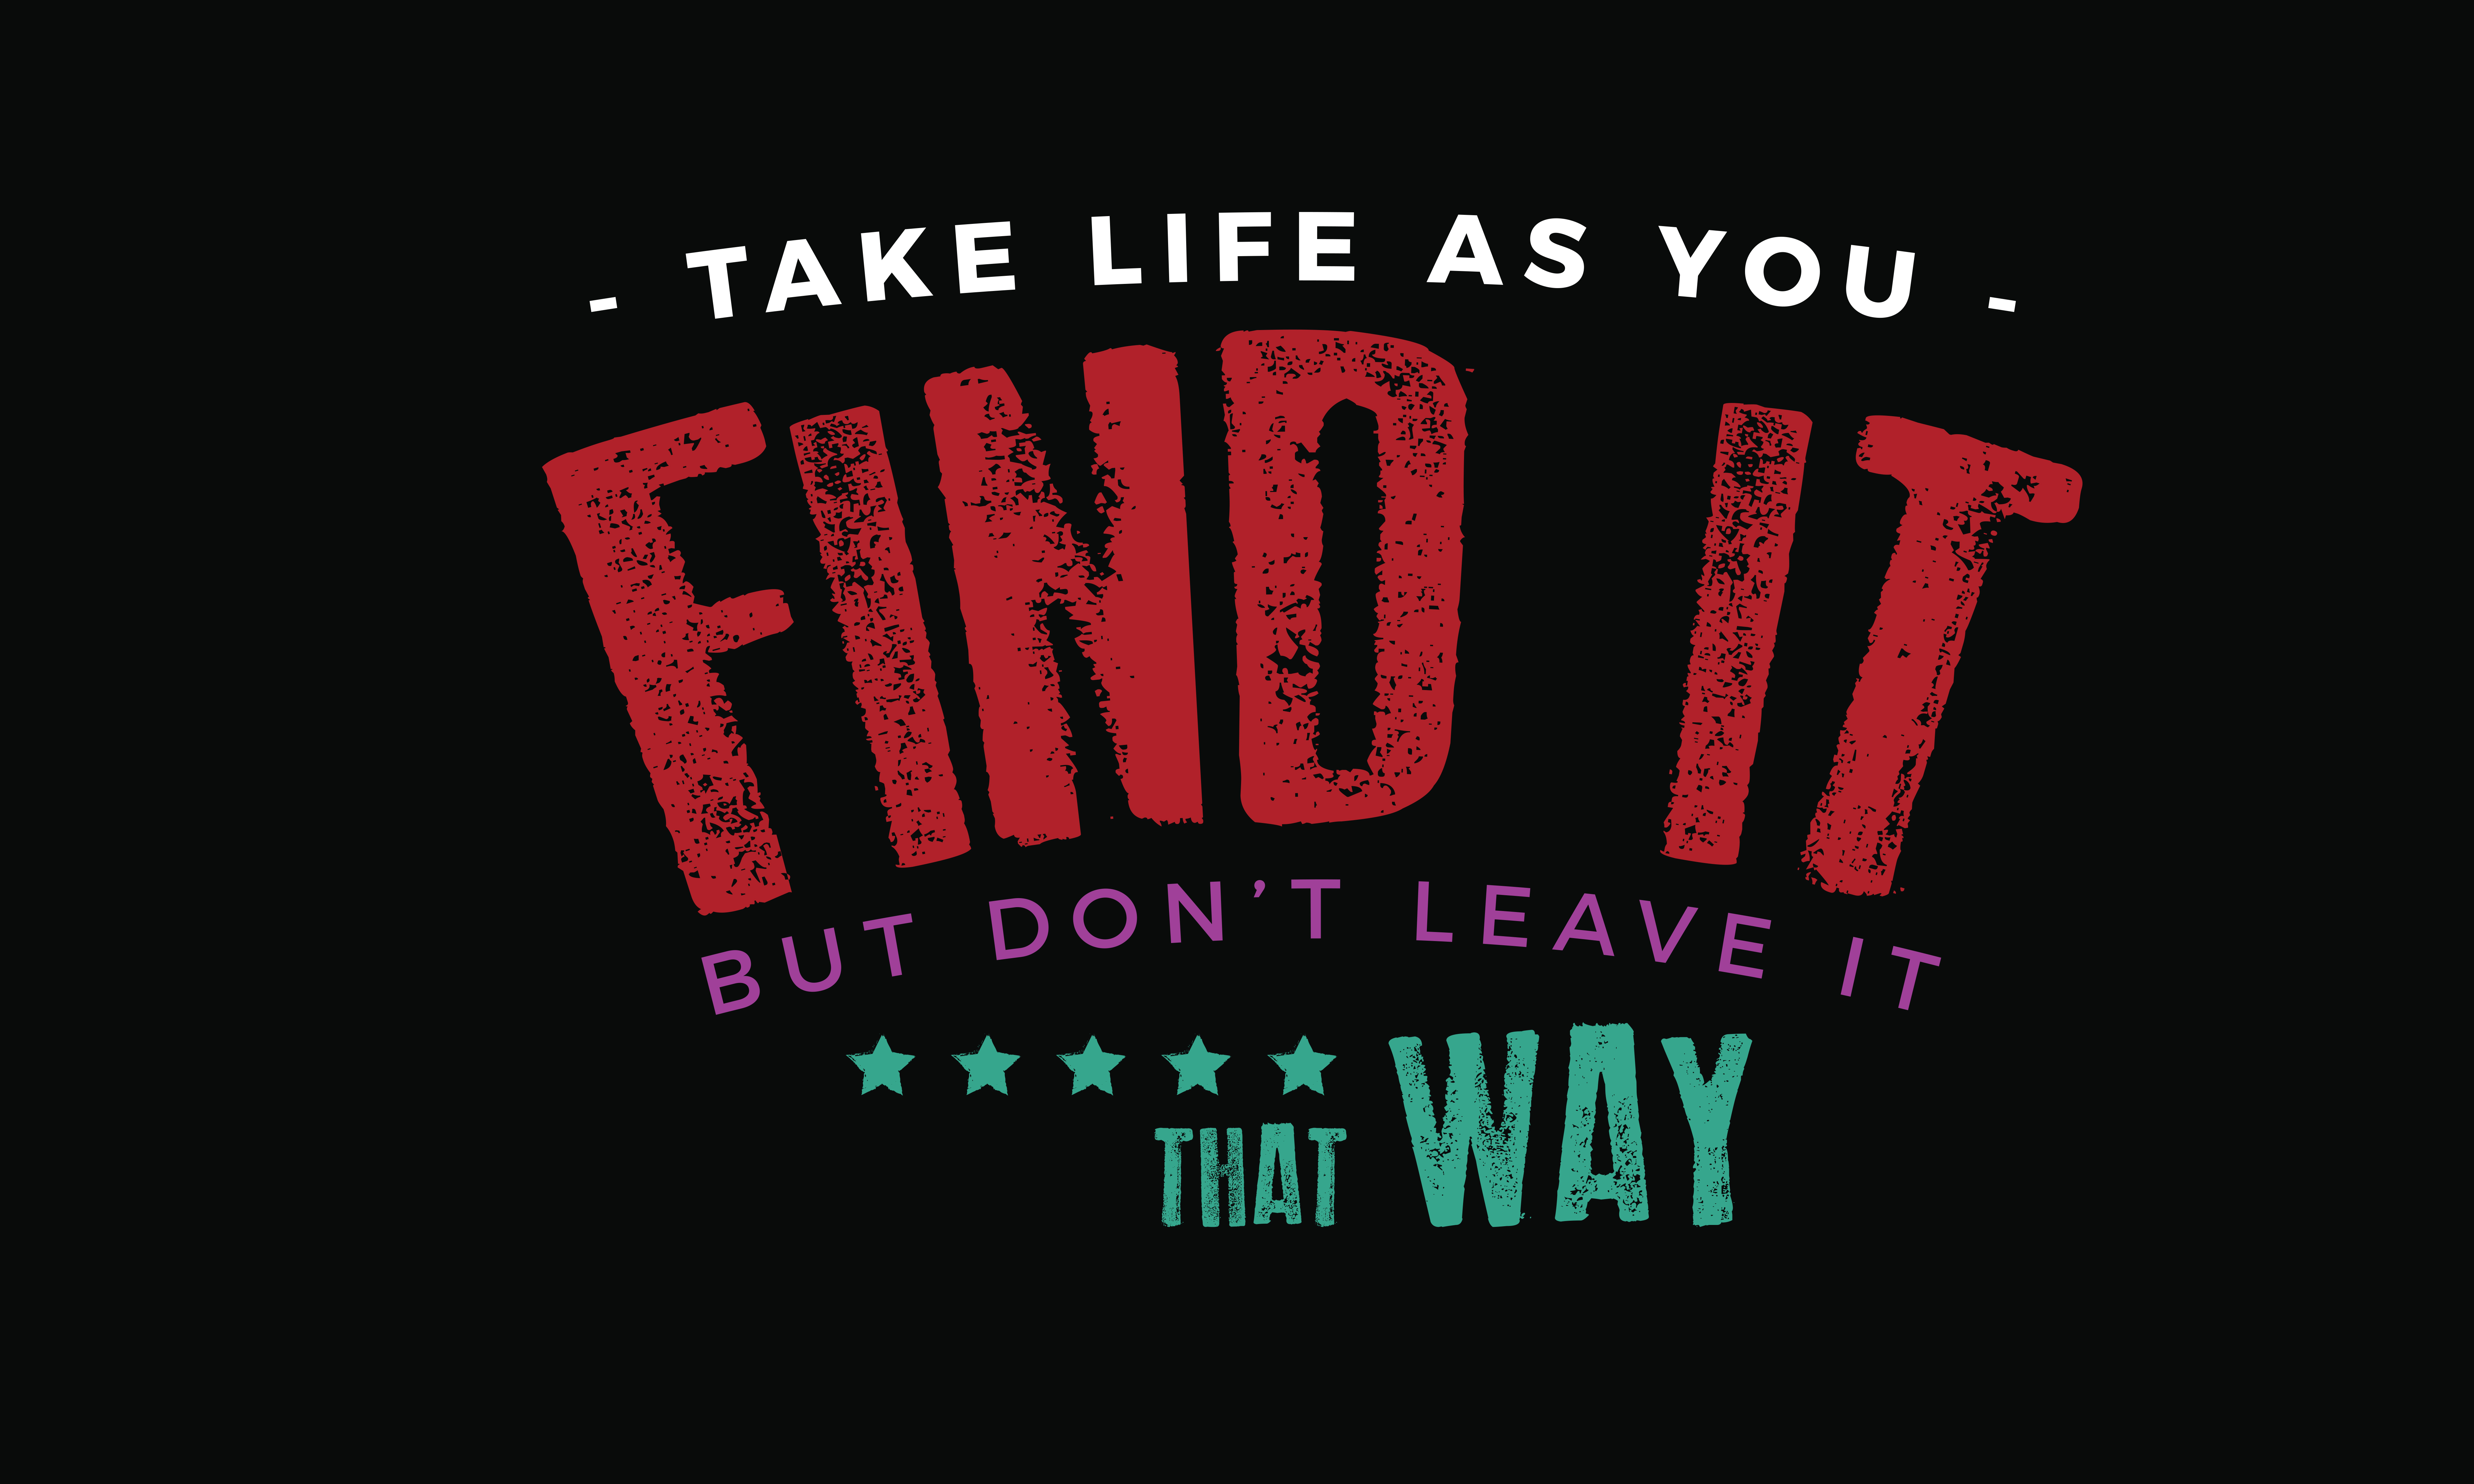 Download Free Take Life As You Find It Graphic By Baraeiji Creative Fabrica for Cricut Explore, Silhouette and other cutting machines.